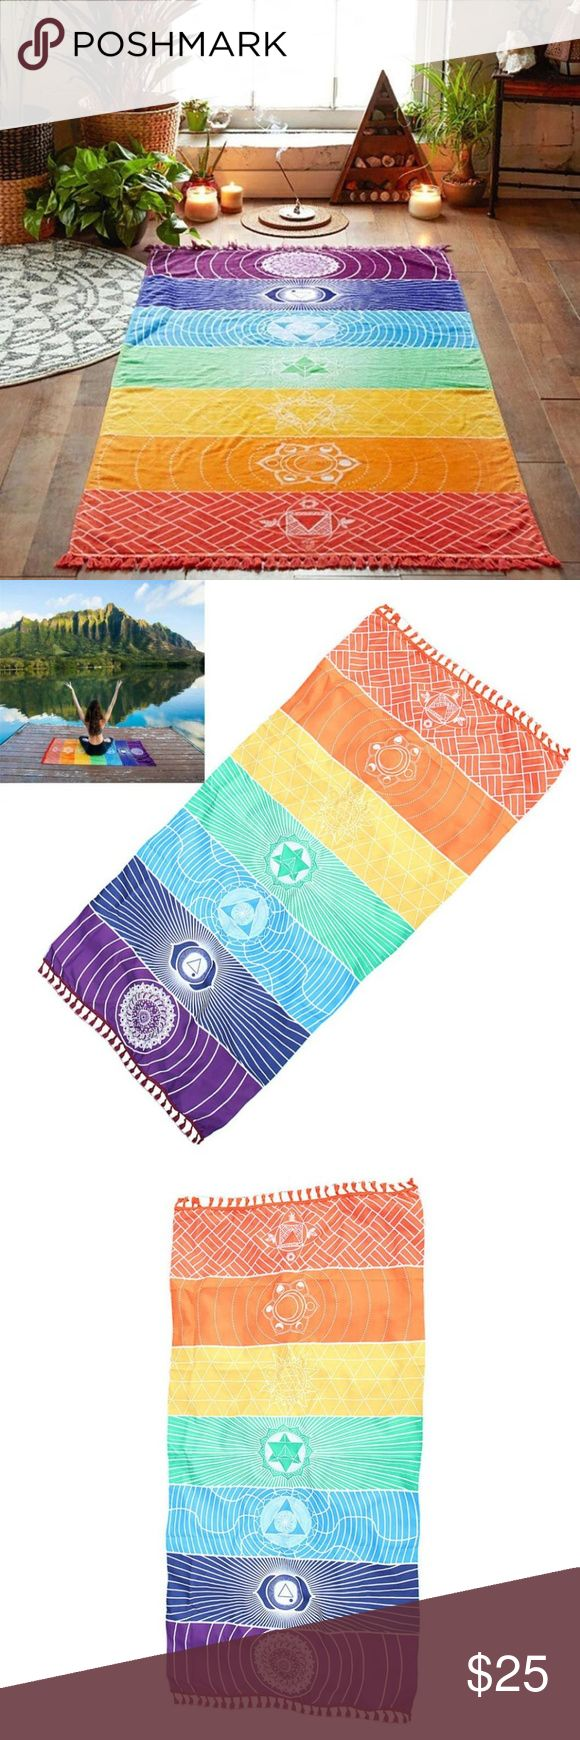 Rainbow Chakra Visionary Art Tapestry Mat Great item for festival season!  Very bright and beautiful multi-colored tapestry with the 7 chakra symbols and geometric patterns that would look great hung on a wall, laid flat on the ground at a festival or picnic or used as a table runner.  Very soft and light, not thick enough to be used as a yoga mat or a towel but can be placed on top of a yoga mat for comfort.  Fringe accents on both ends.  100% Polyester.  Machine wash cold, tumble dry low…